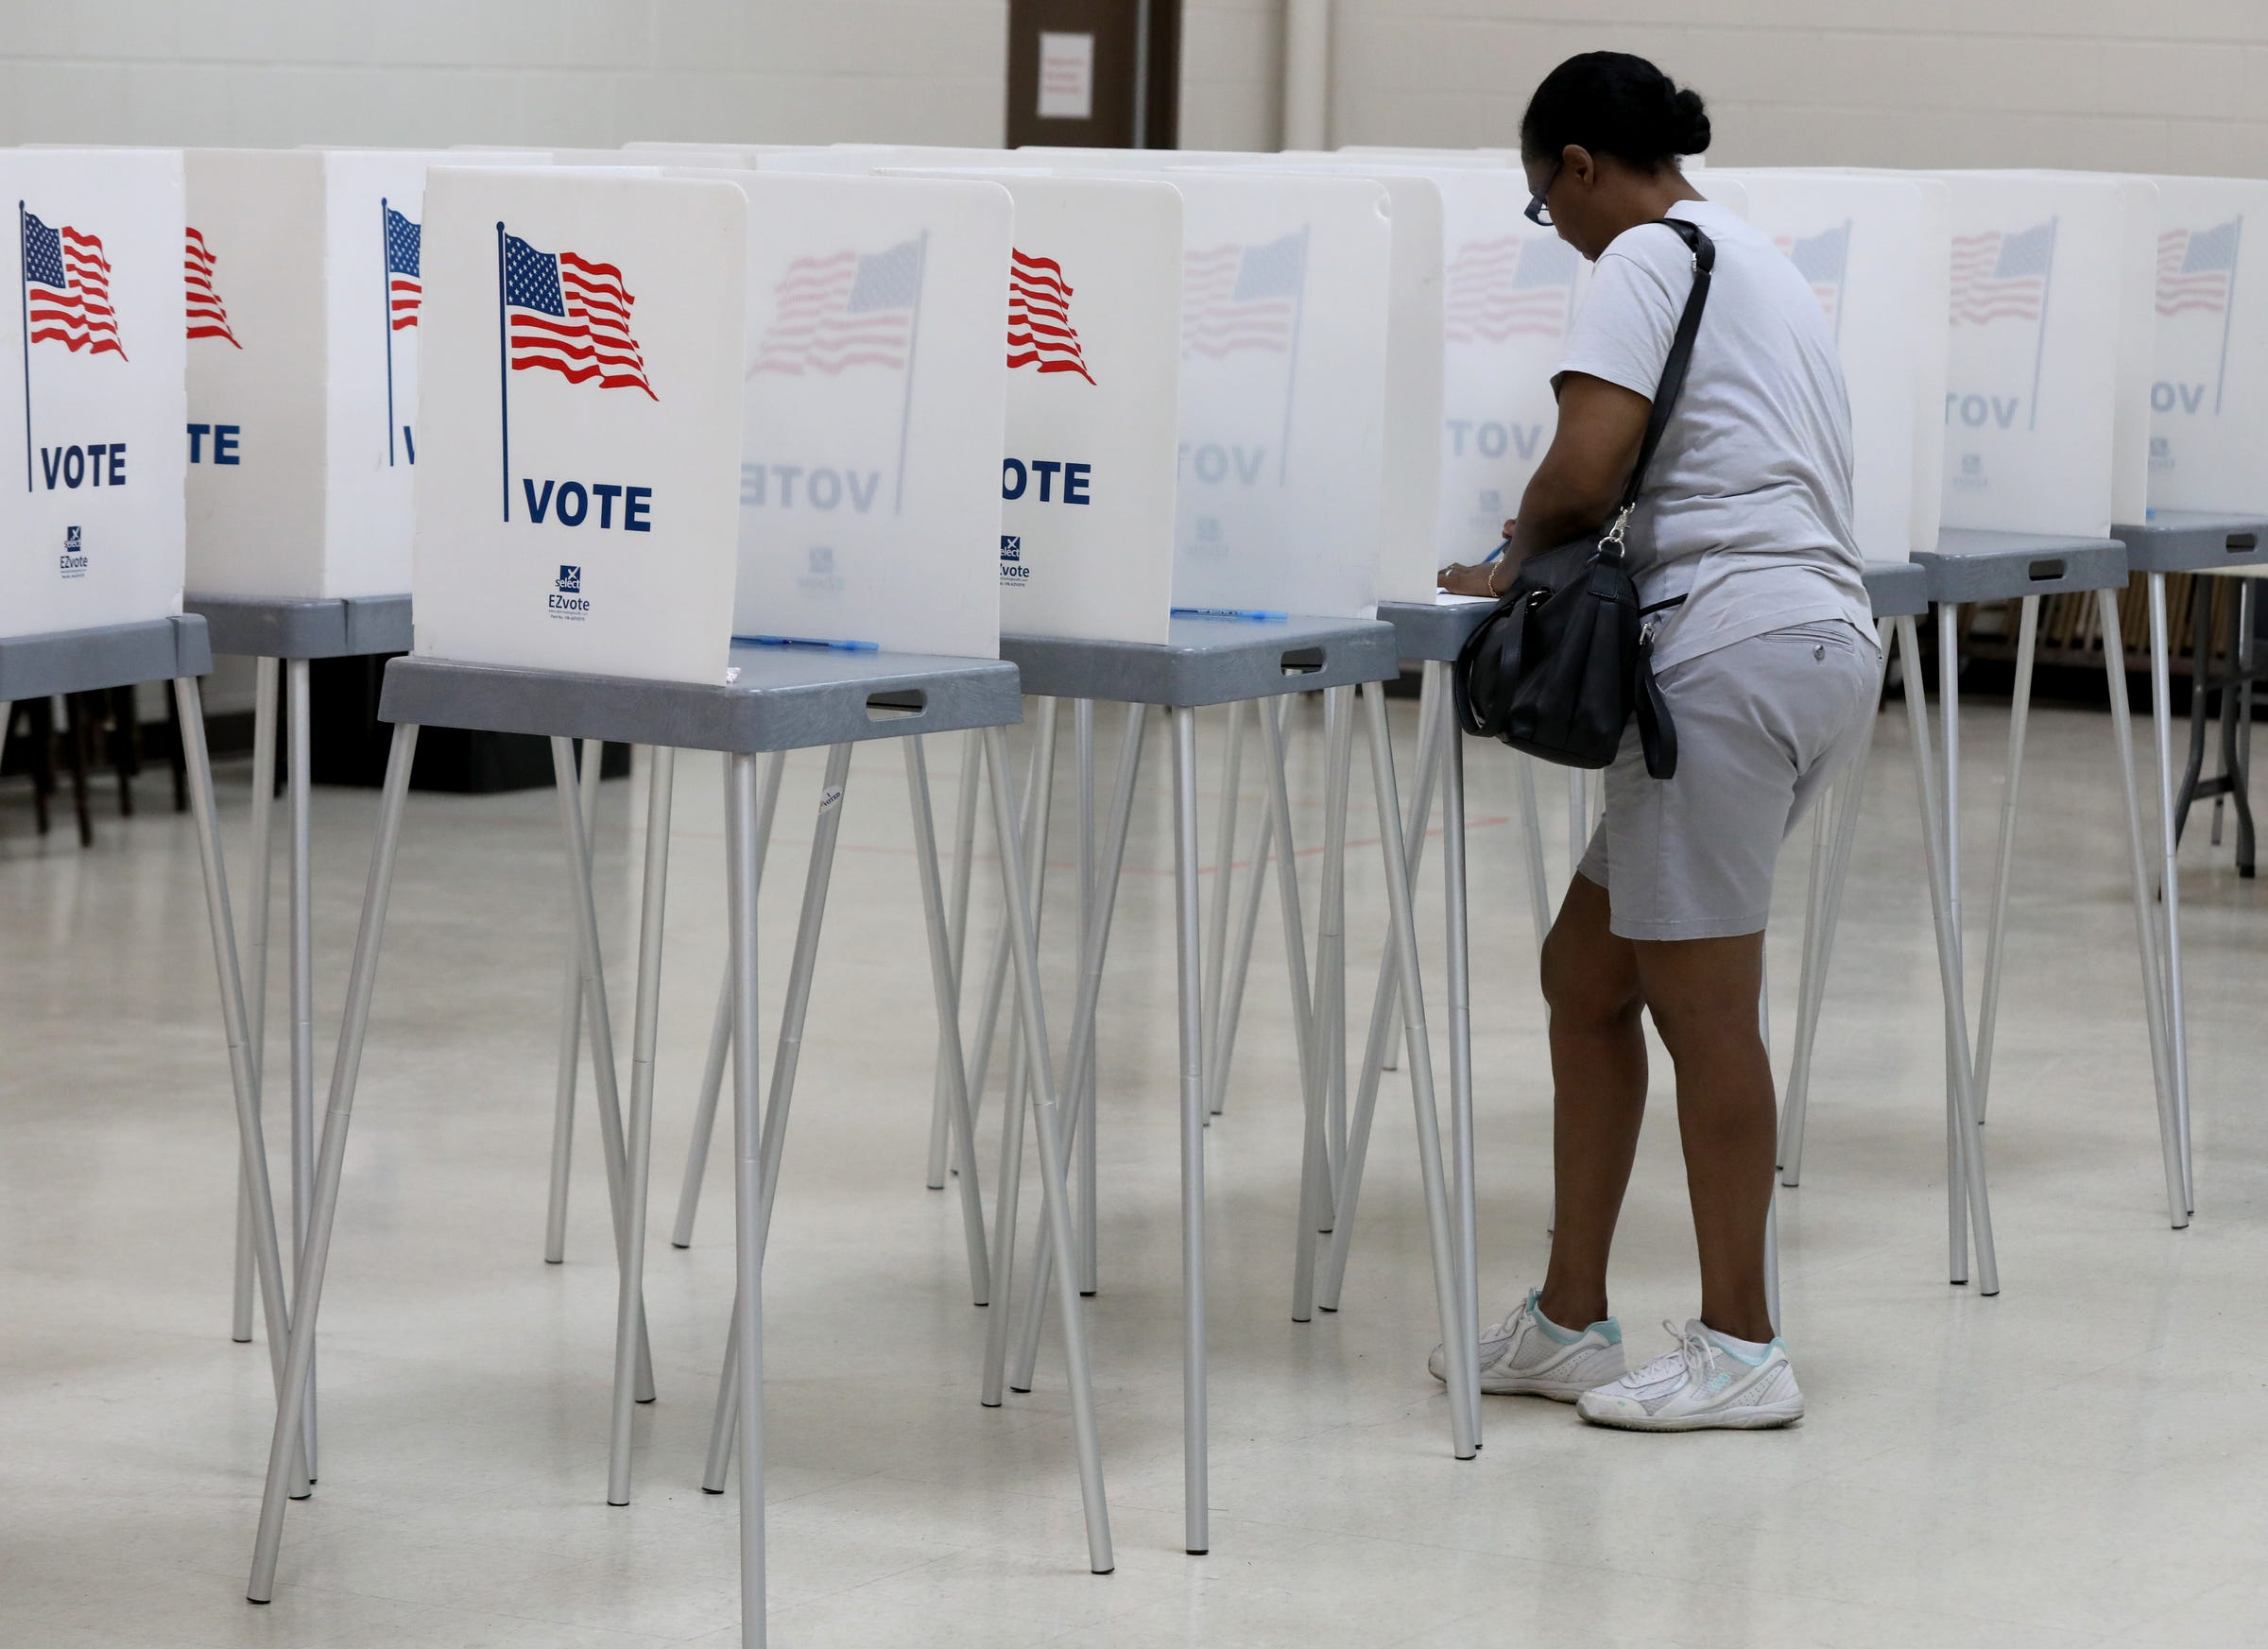 Midterms: ACLU investigating reports of ballot shortages throughout Michigan